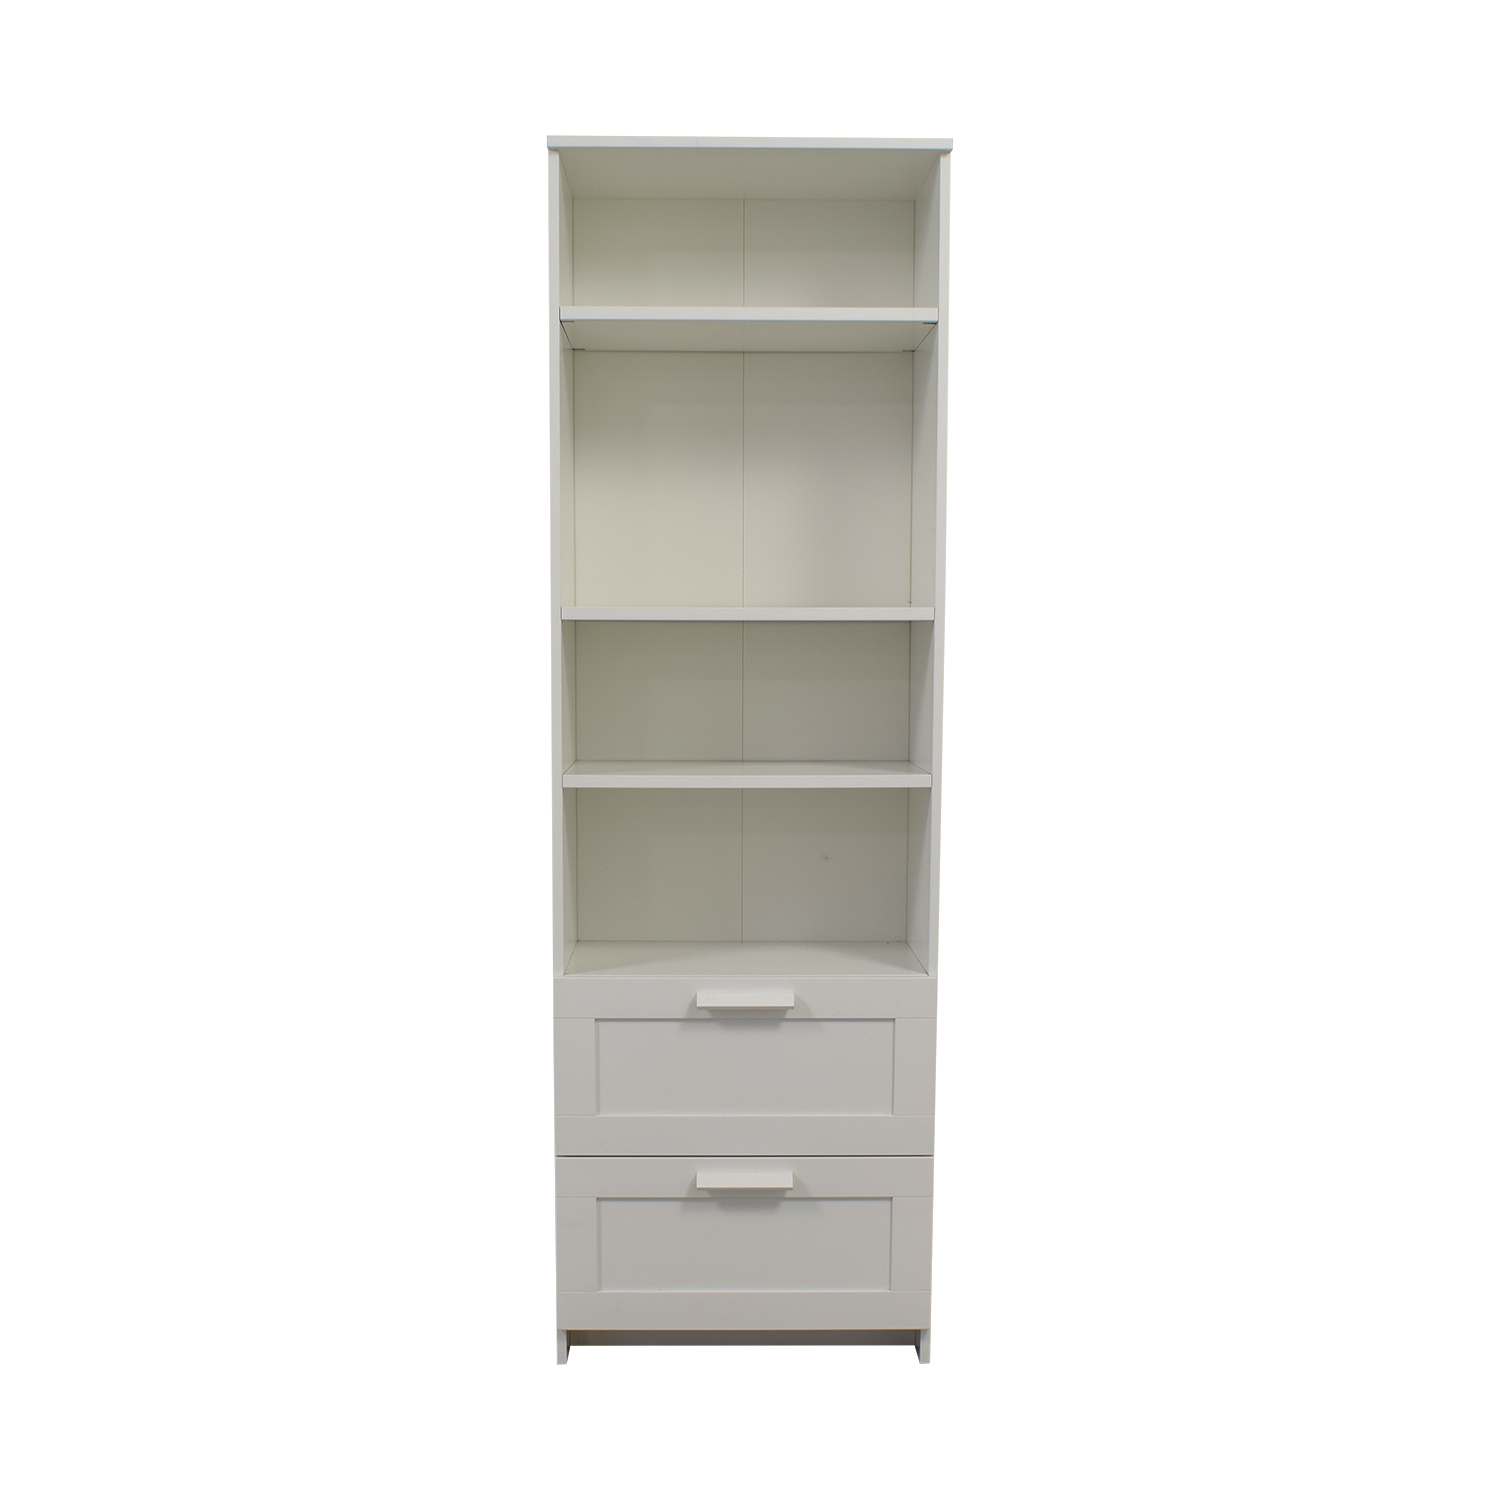 Ikea Ikea Brimnes White Bookcase With Two Drawers Used